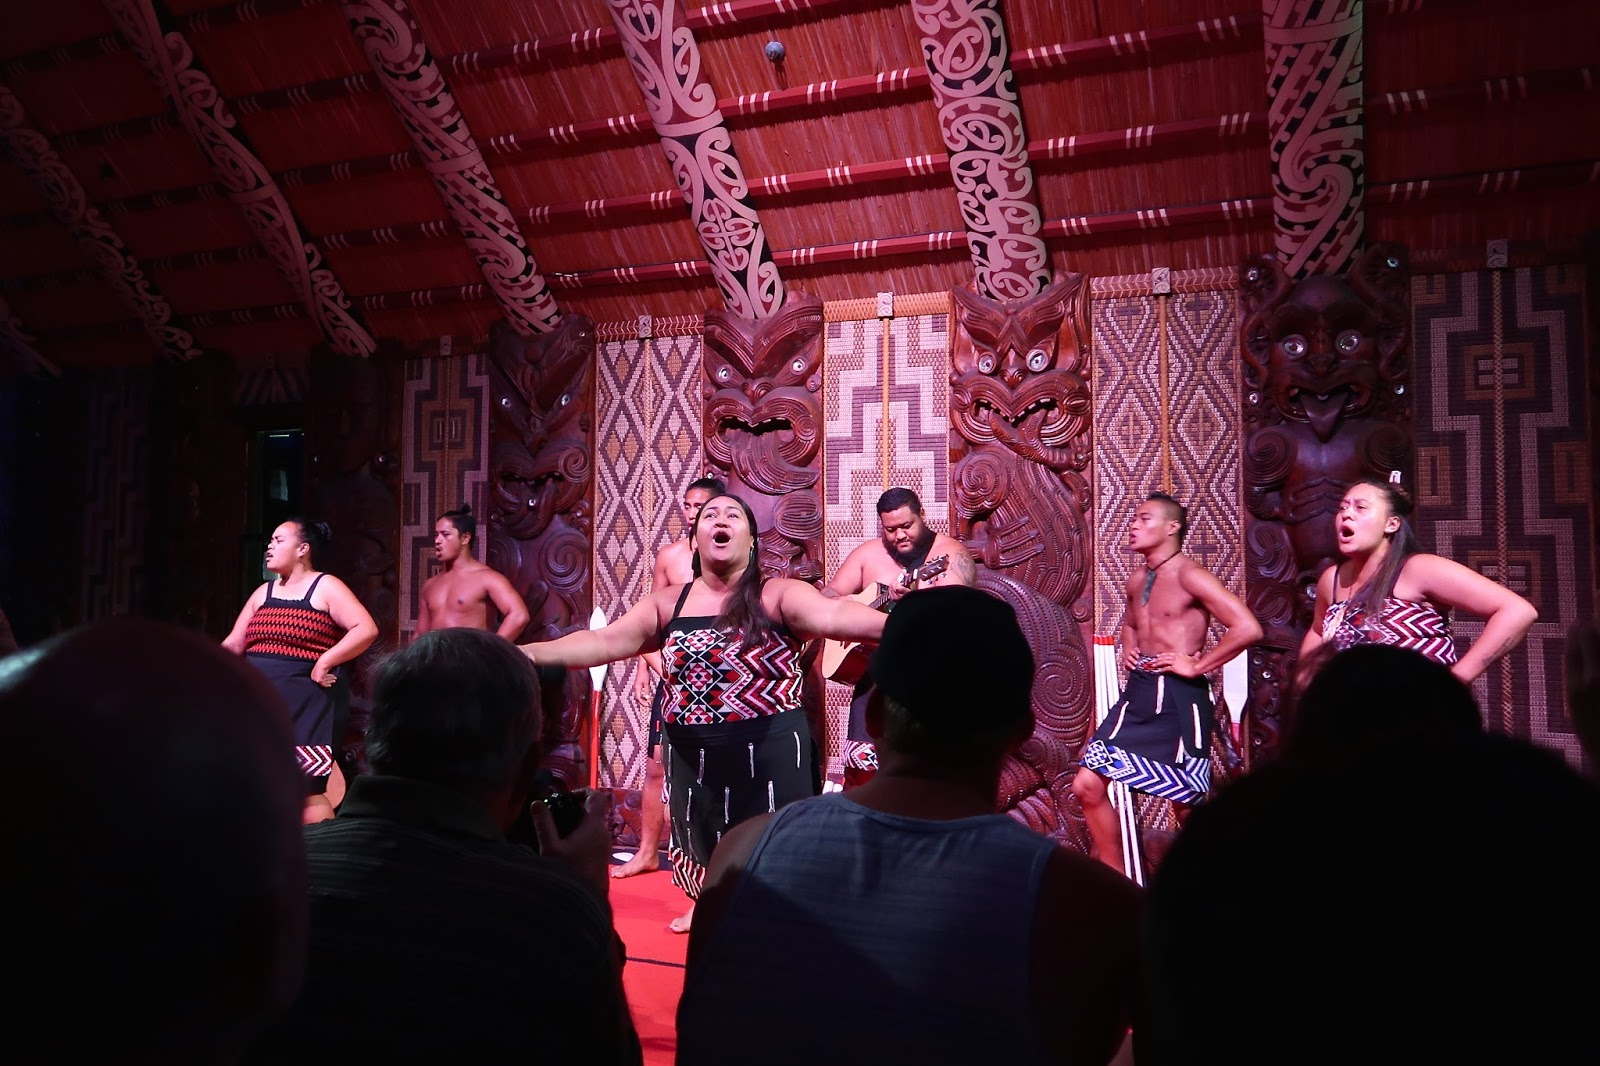 Traditional Maori song and dance at the Waitangi Treaty Grounds, New Zealand